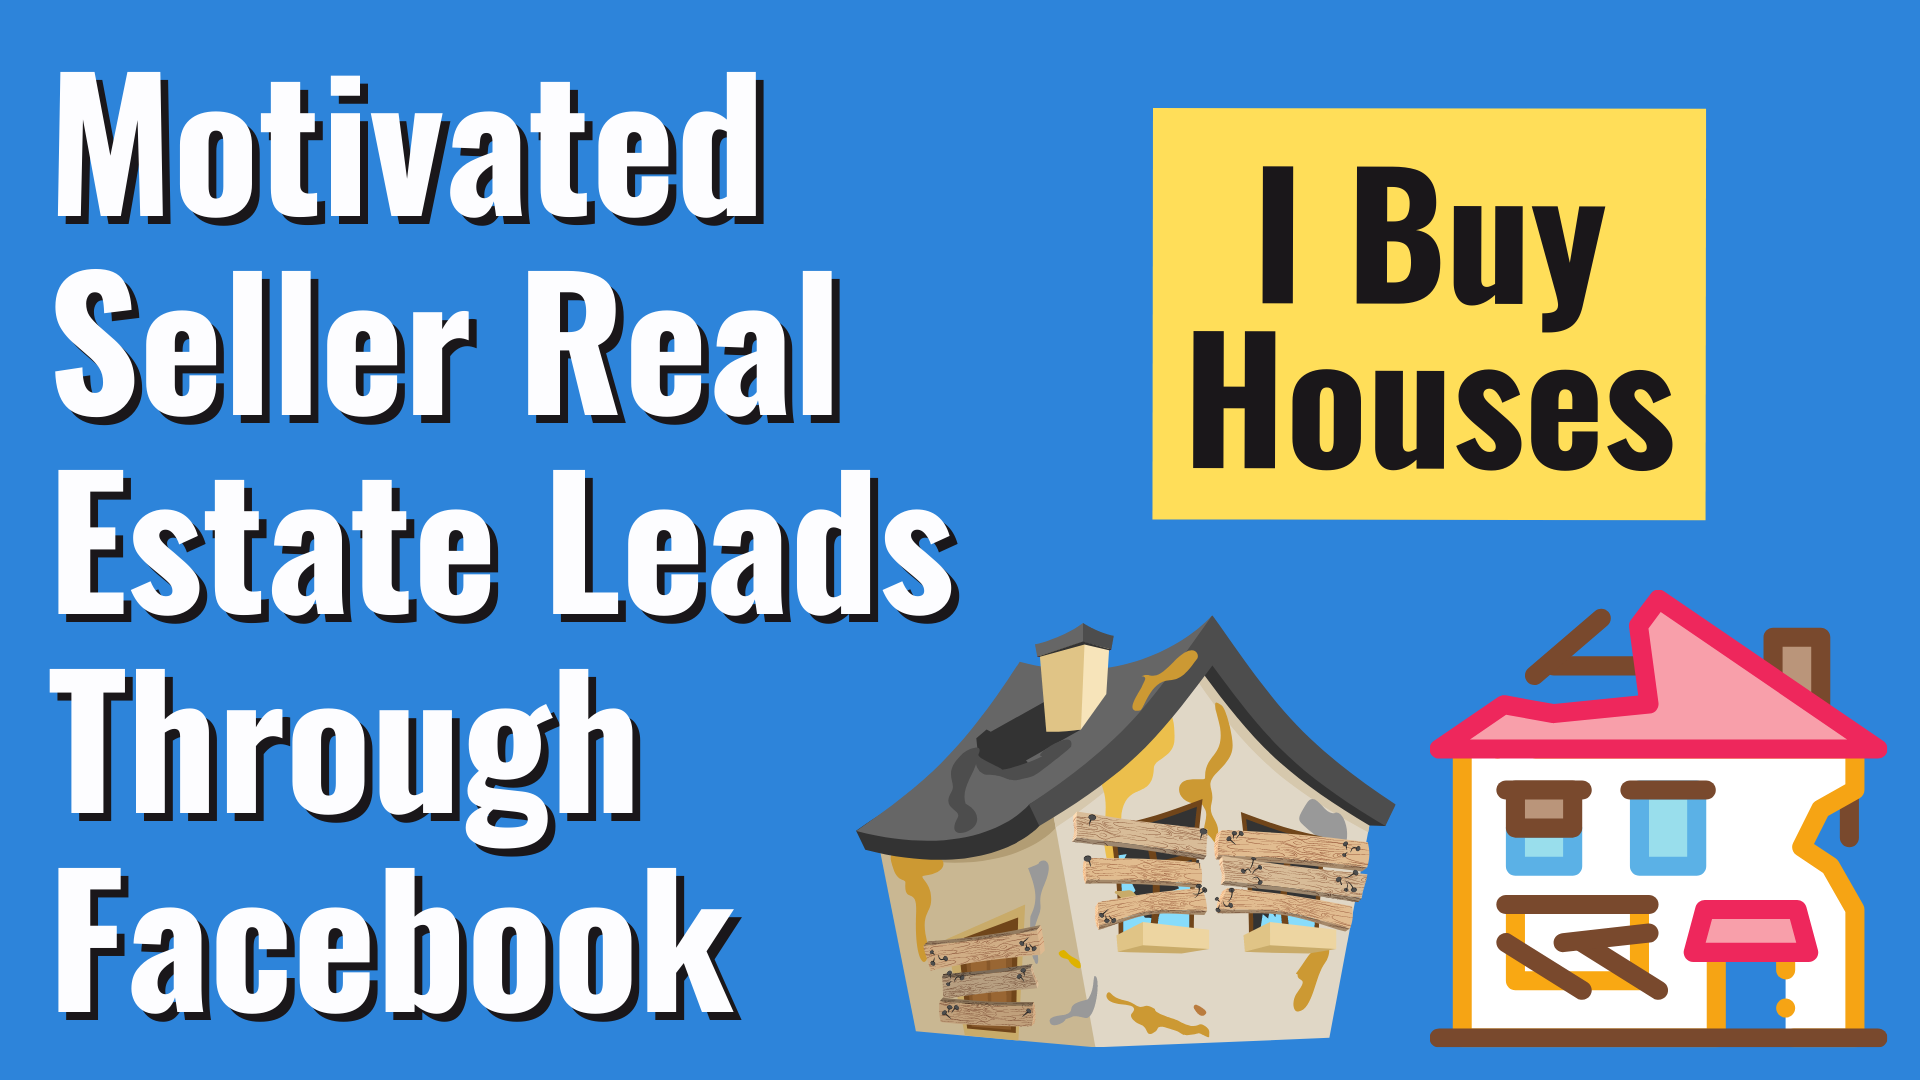 Get Motivated Seller Real Estate Leads Through Facebook - Featured Image